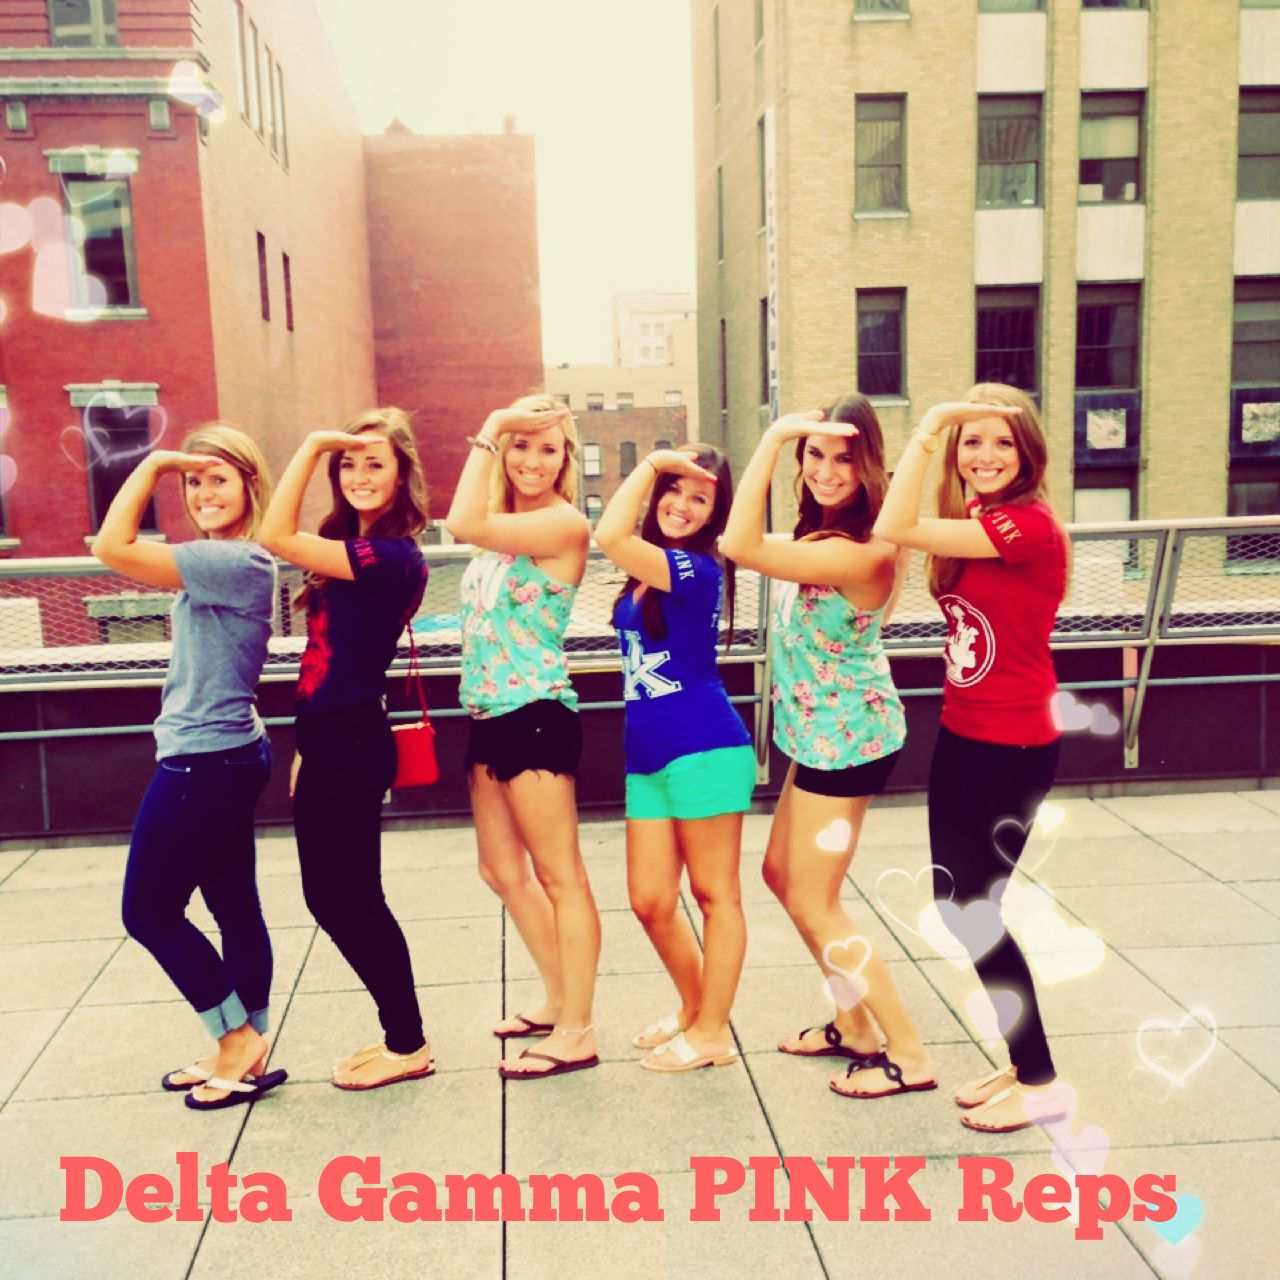 So Cool Meeting Dgs From Other Schools All Over The Us Victoriassecret Pink Pinkrep Campusrep Deltagamma Dg Anchored Delta Gamma Pink Pink Brand